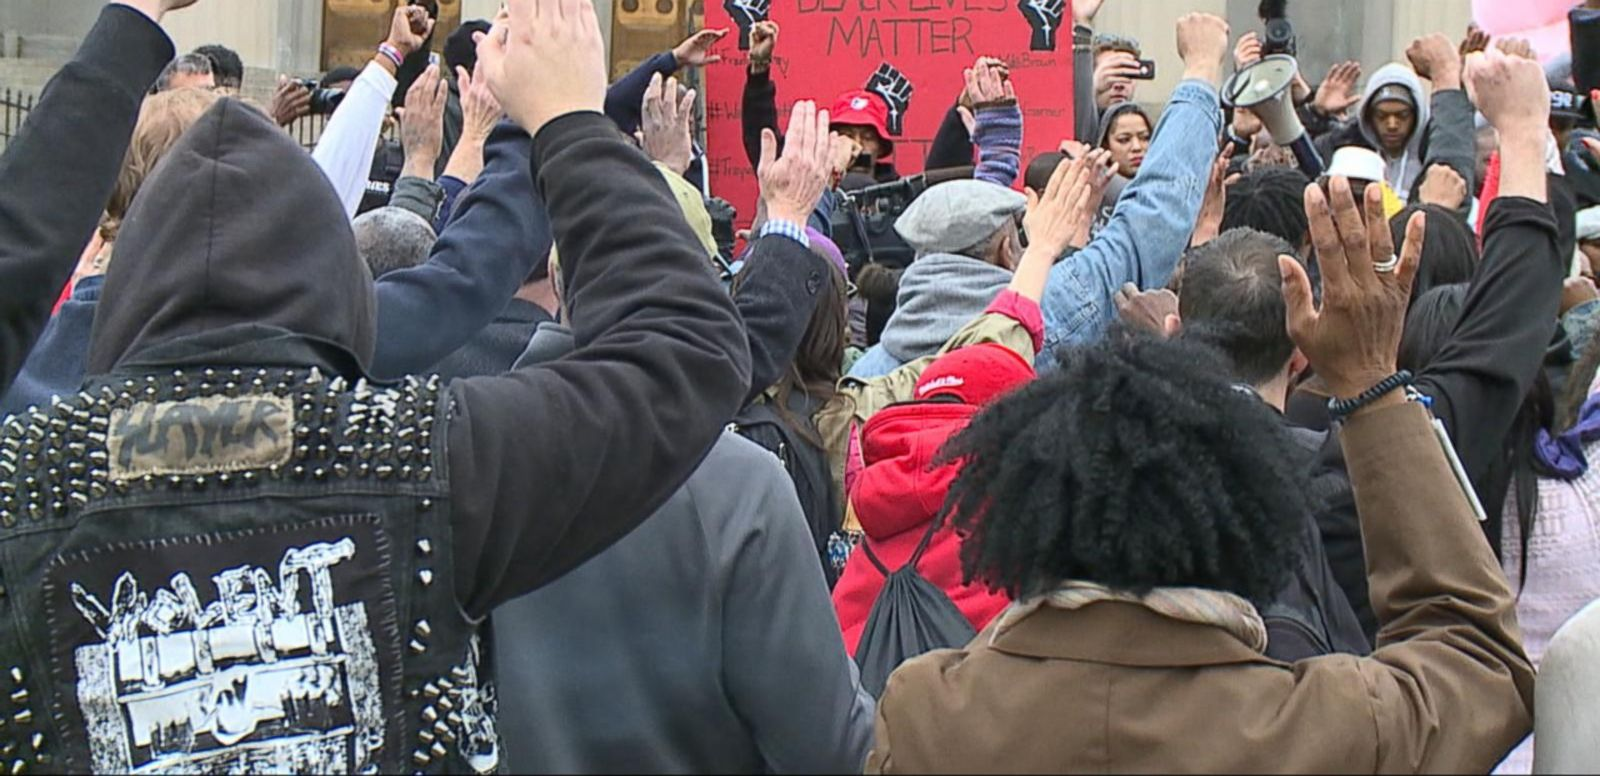 VIDEO: Demonstrators Protest Death of Freddie Grey